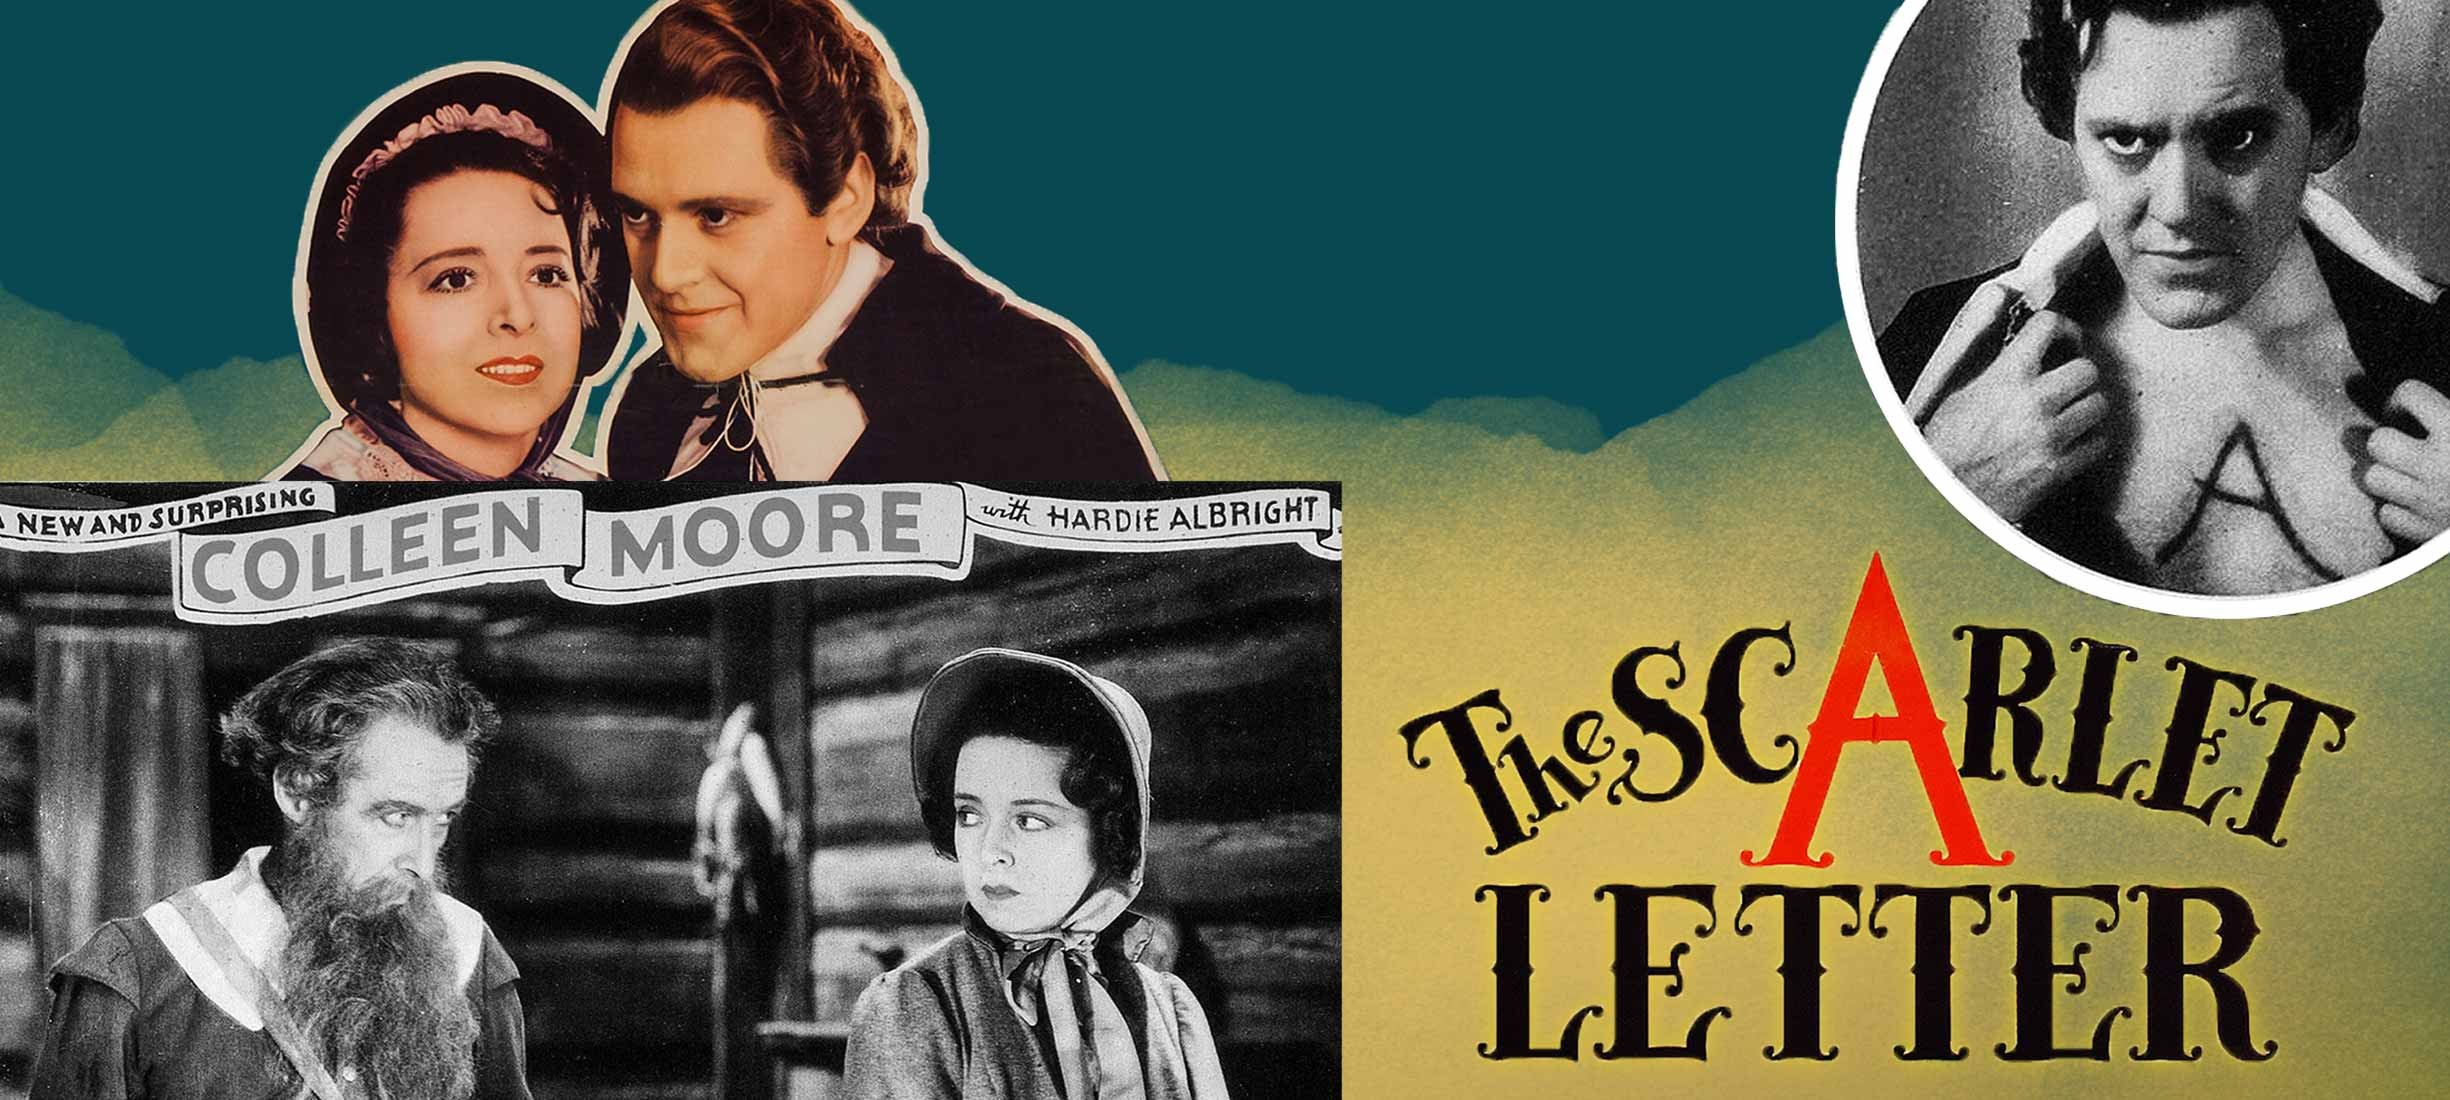 Watch The Scarlet Letter Online   Pure Flix